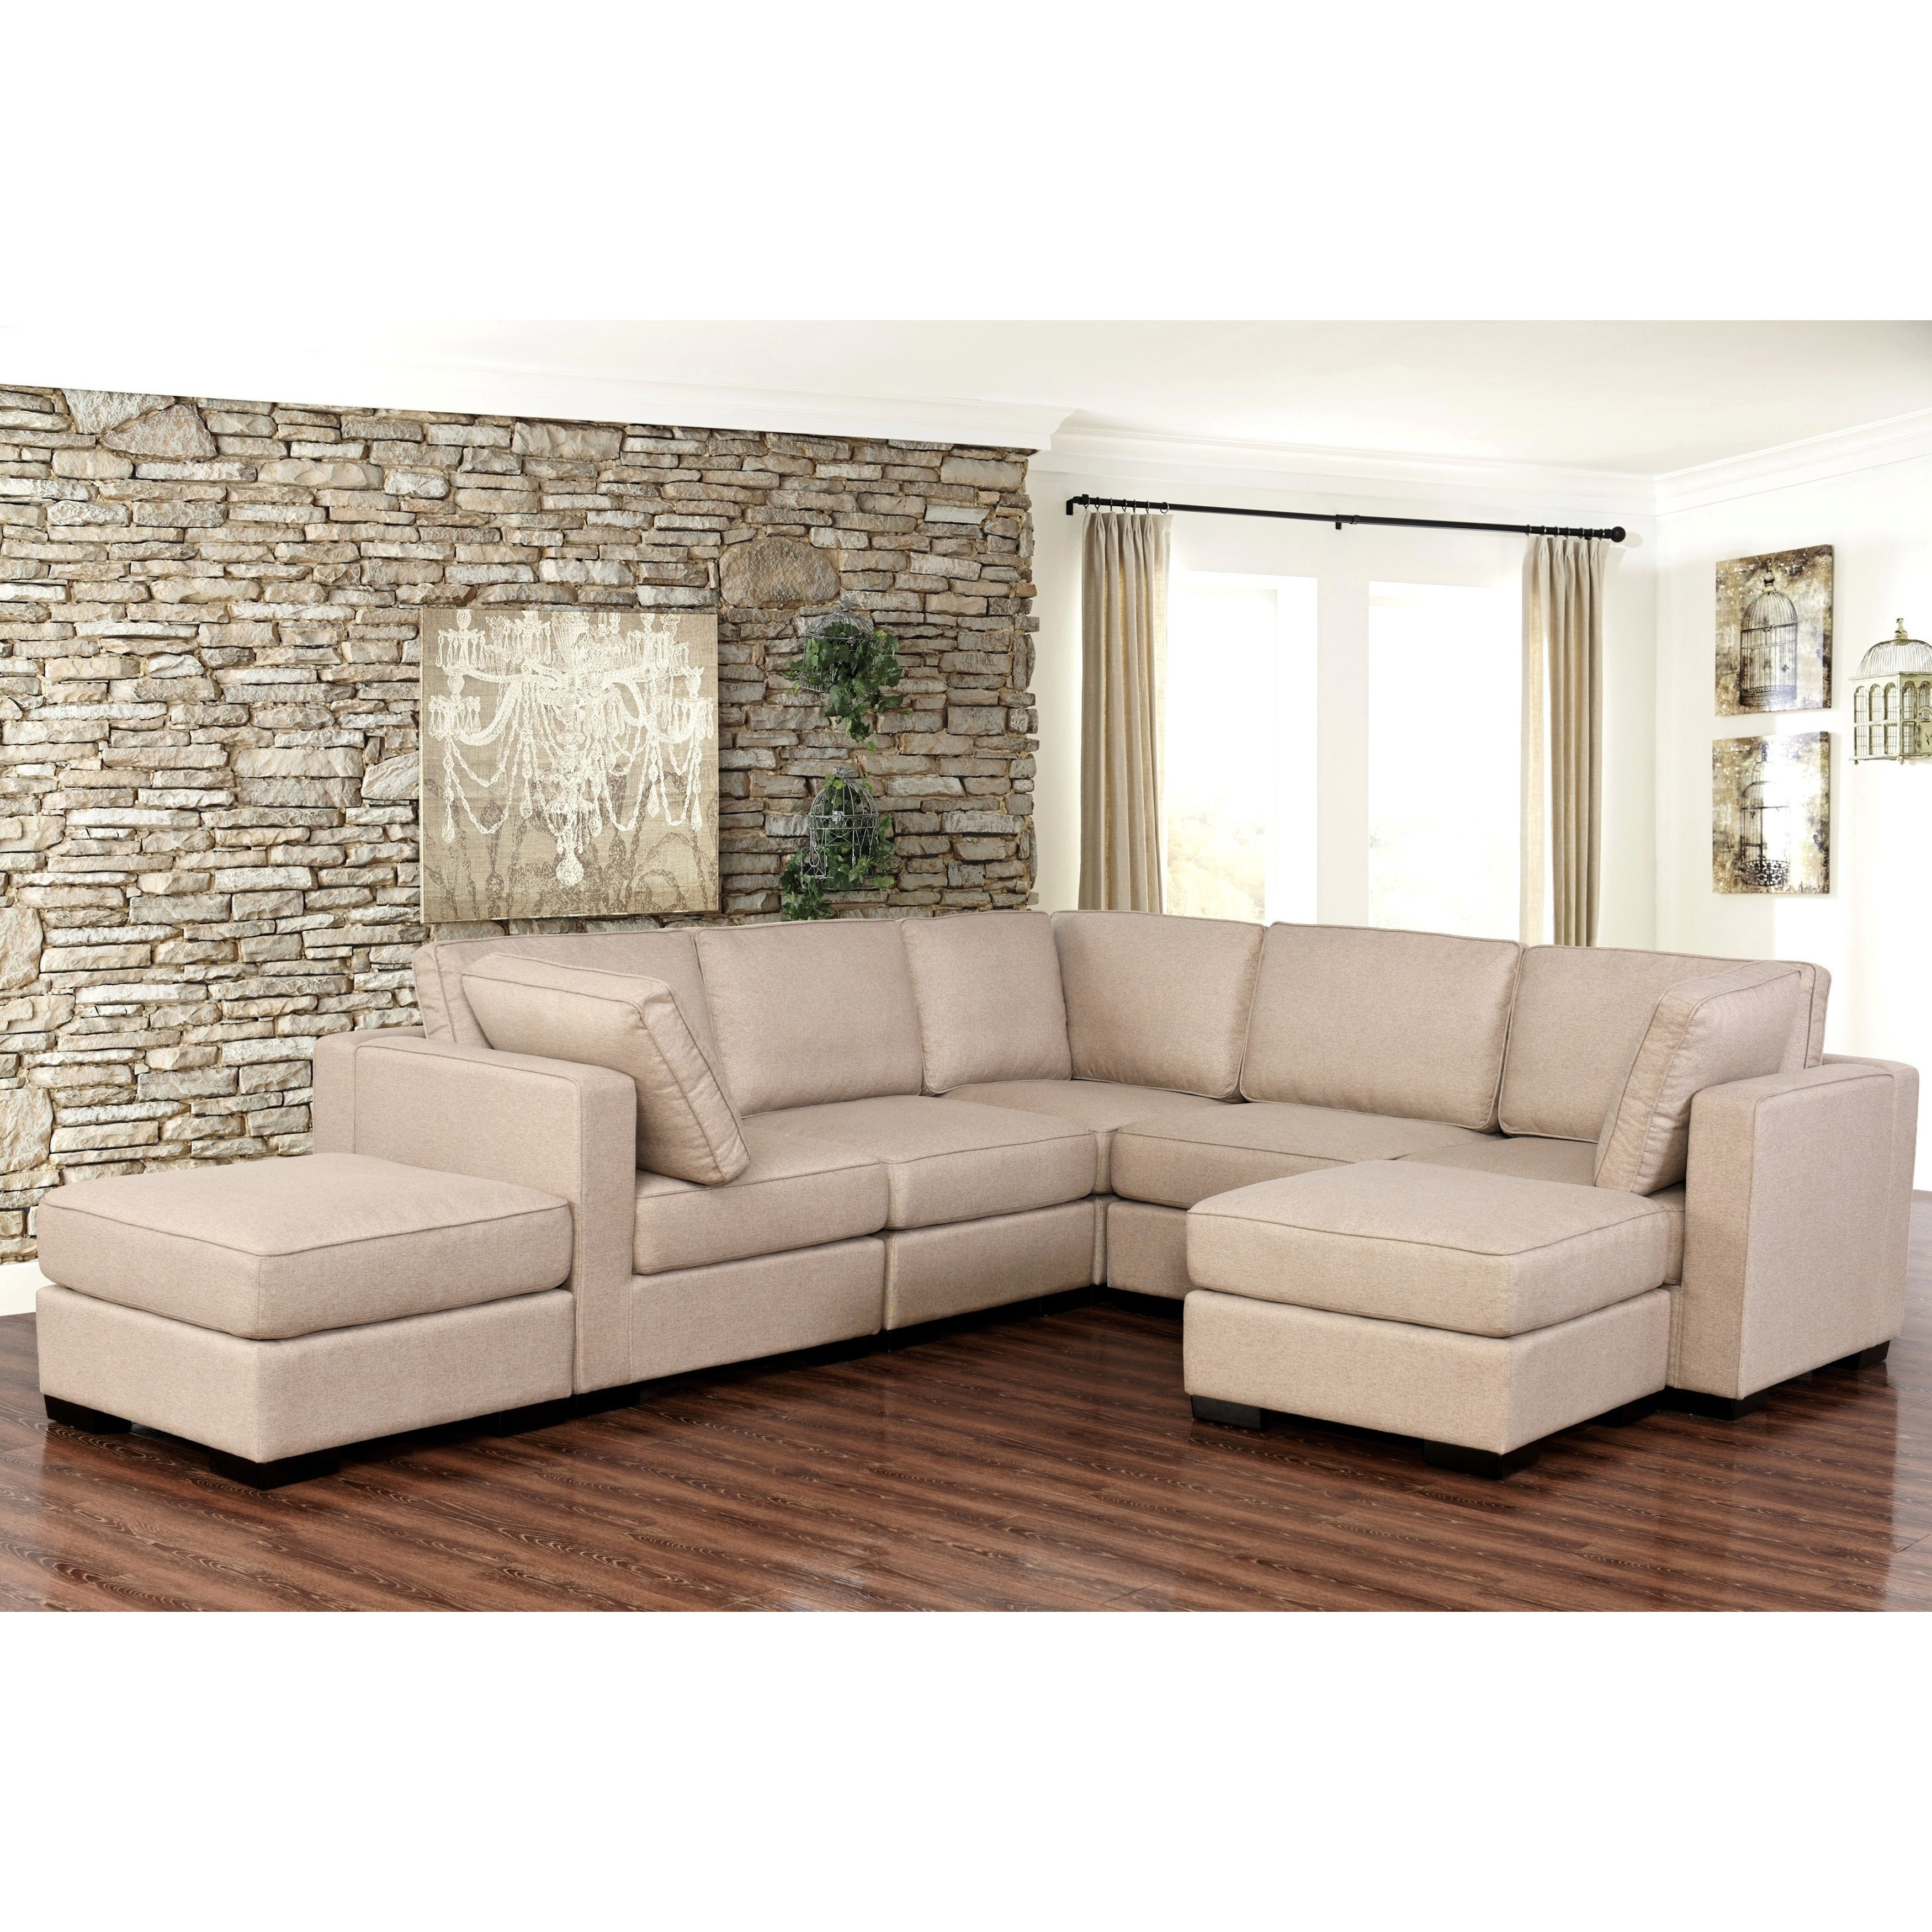 Shop Abbyson Harper Fabric Modular 7 Piece Sectional – Free Shipping Inside Harper Down 3 Piece Sectionals (Image 21 of 25)